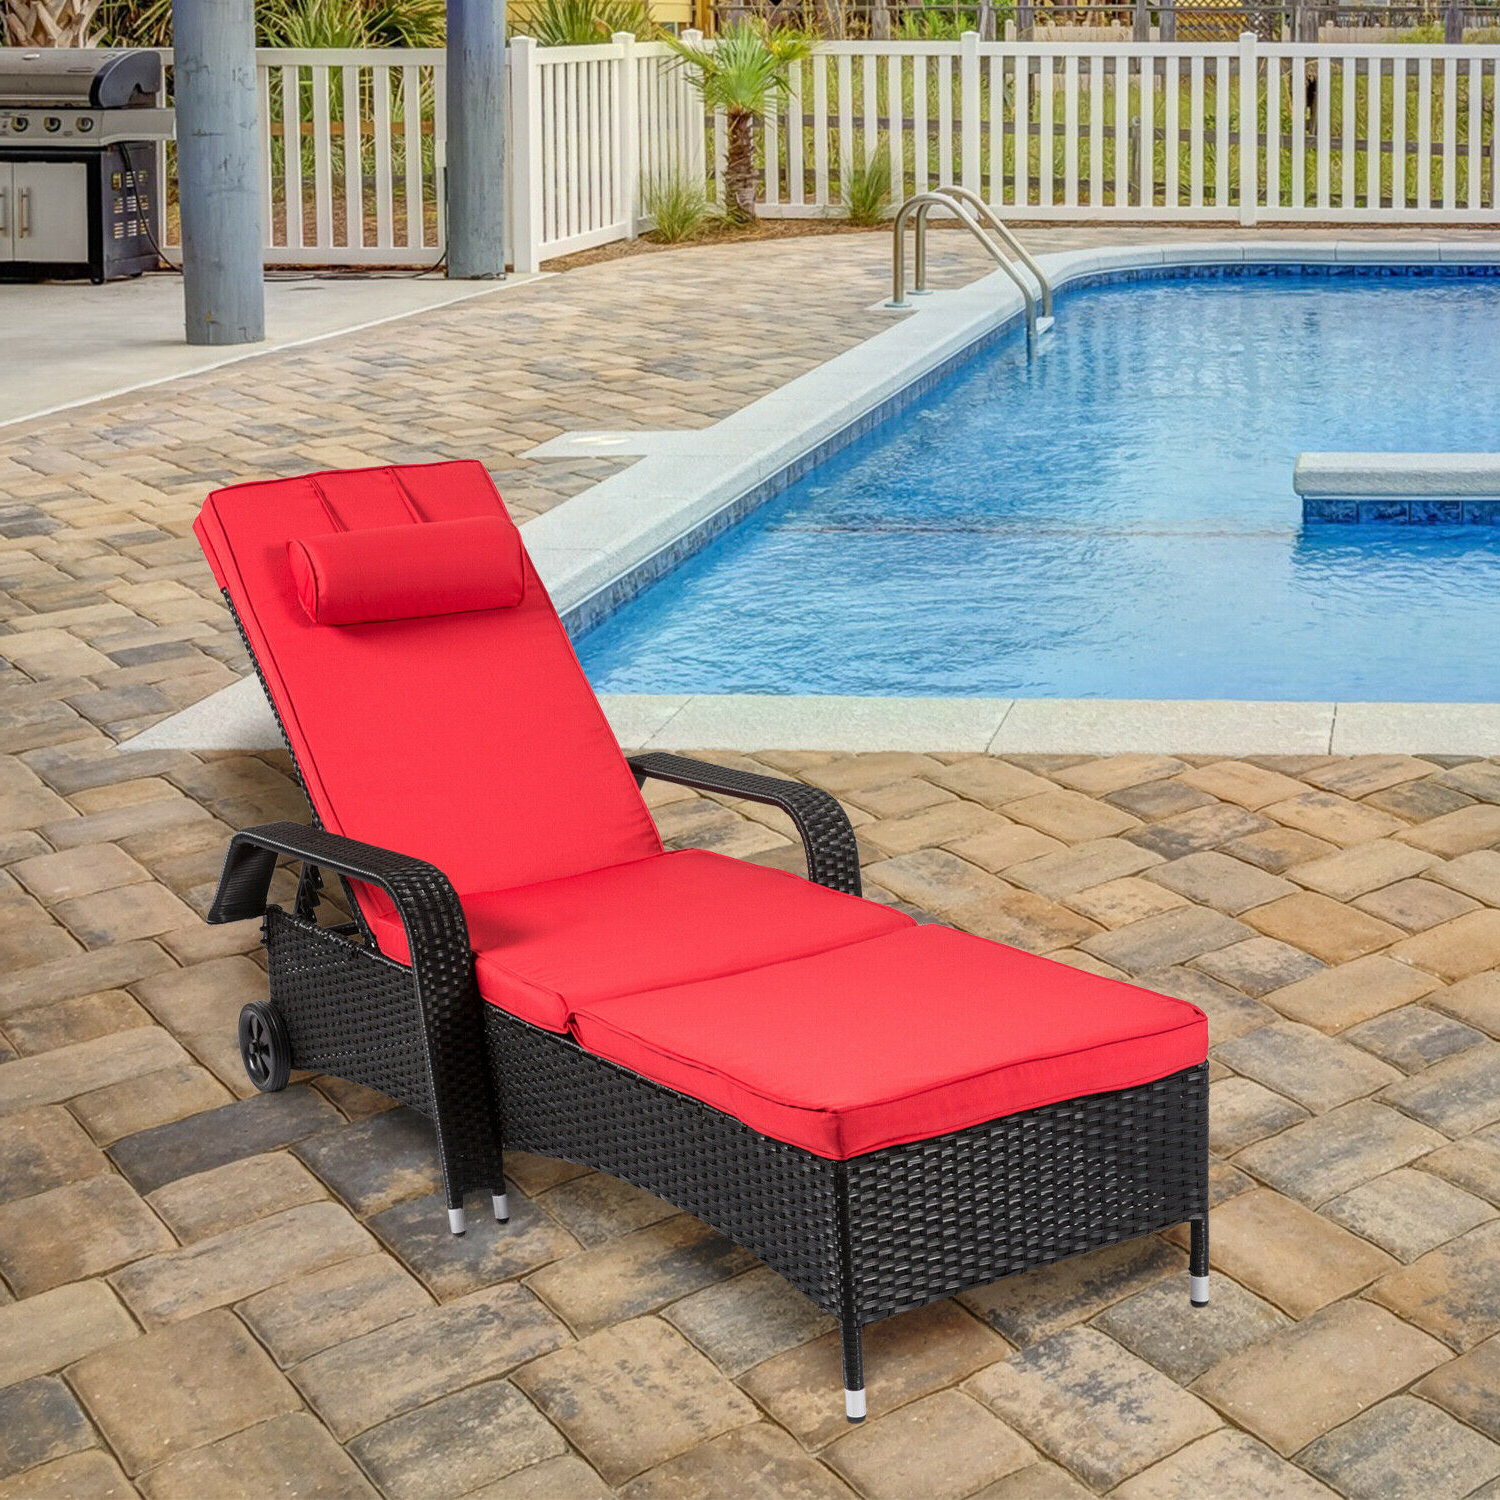 2020 Patio Rattan Wicker Chaise Lounge Recliner Adjustable Couch Chair Cushion  Wheels Throughout Outdoor Adjustable Rattan Wicker Chaise Pool Chairs With Cushions (View 7 of 25)